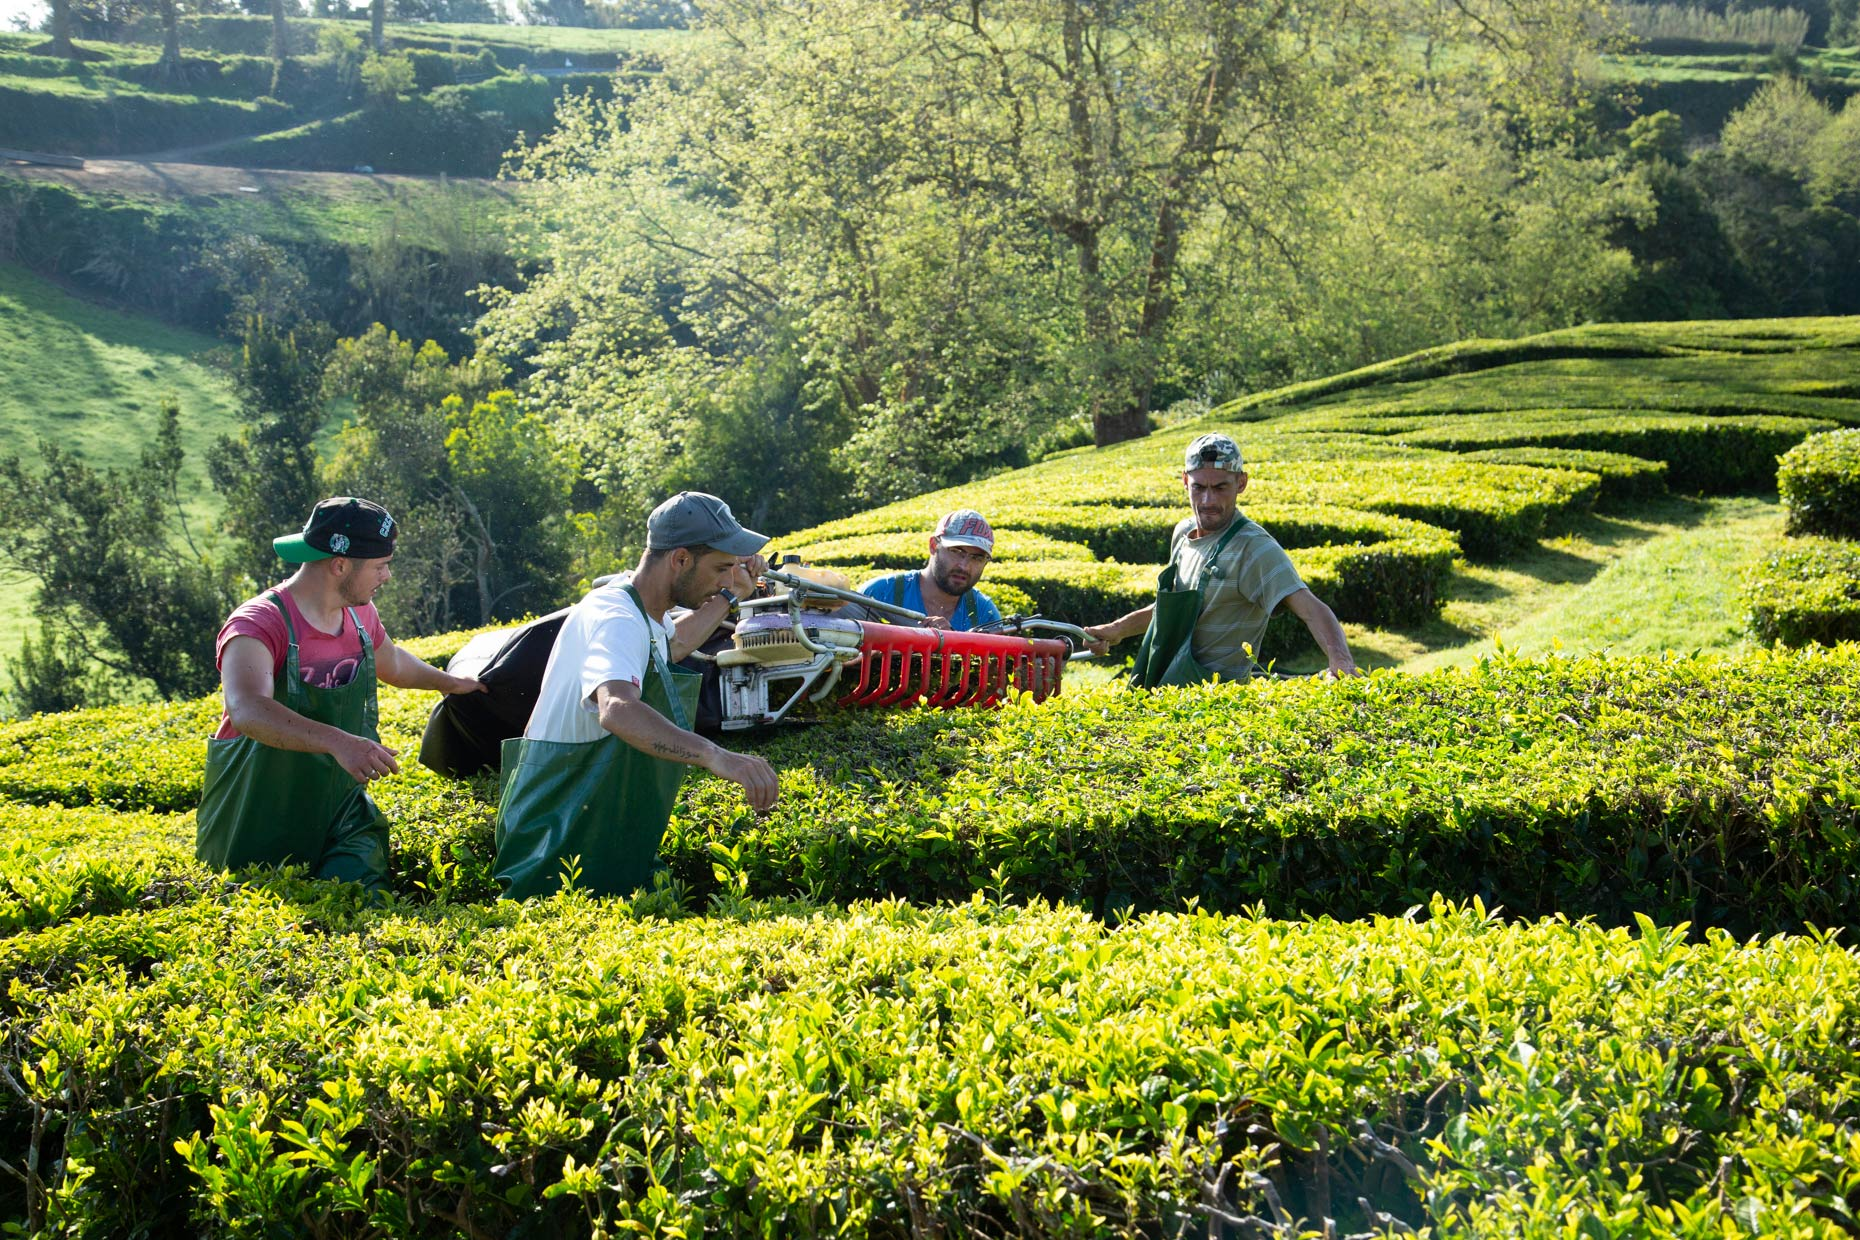 Sao-Miguel-Azores-Gorreana-Tea-Plantation-Portugal-New-York-Times-Caryn-B-Davis